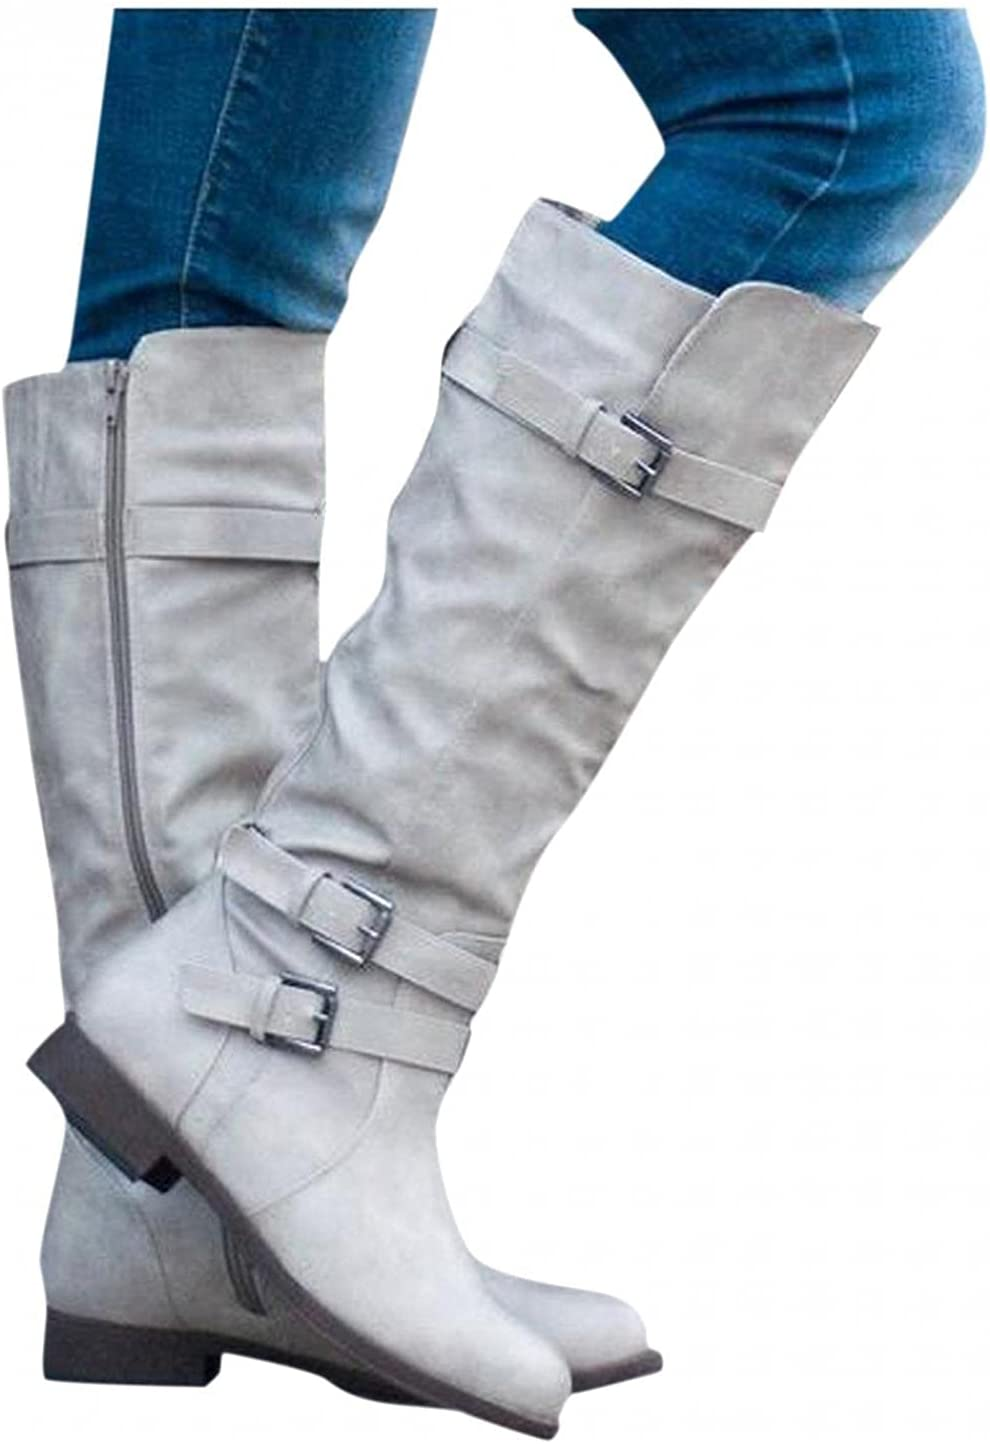 Bcshiye Women's Knee High Riding Kne Buckle New Shipping Free Shipping Sales of SALE items from new works Heel Low Boots